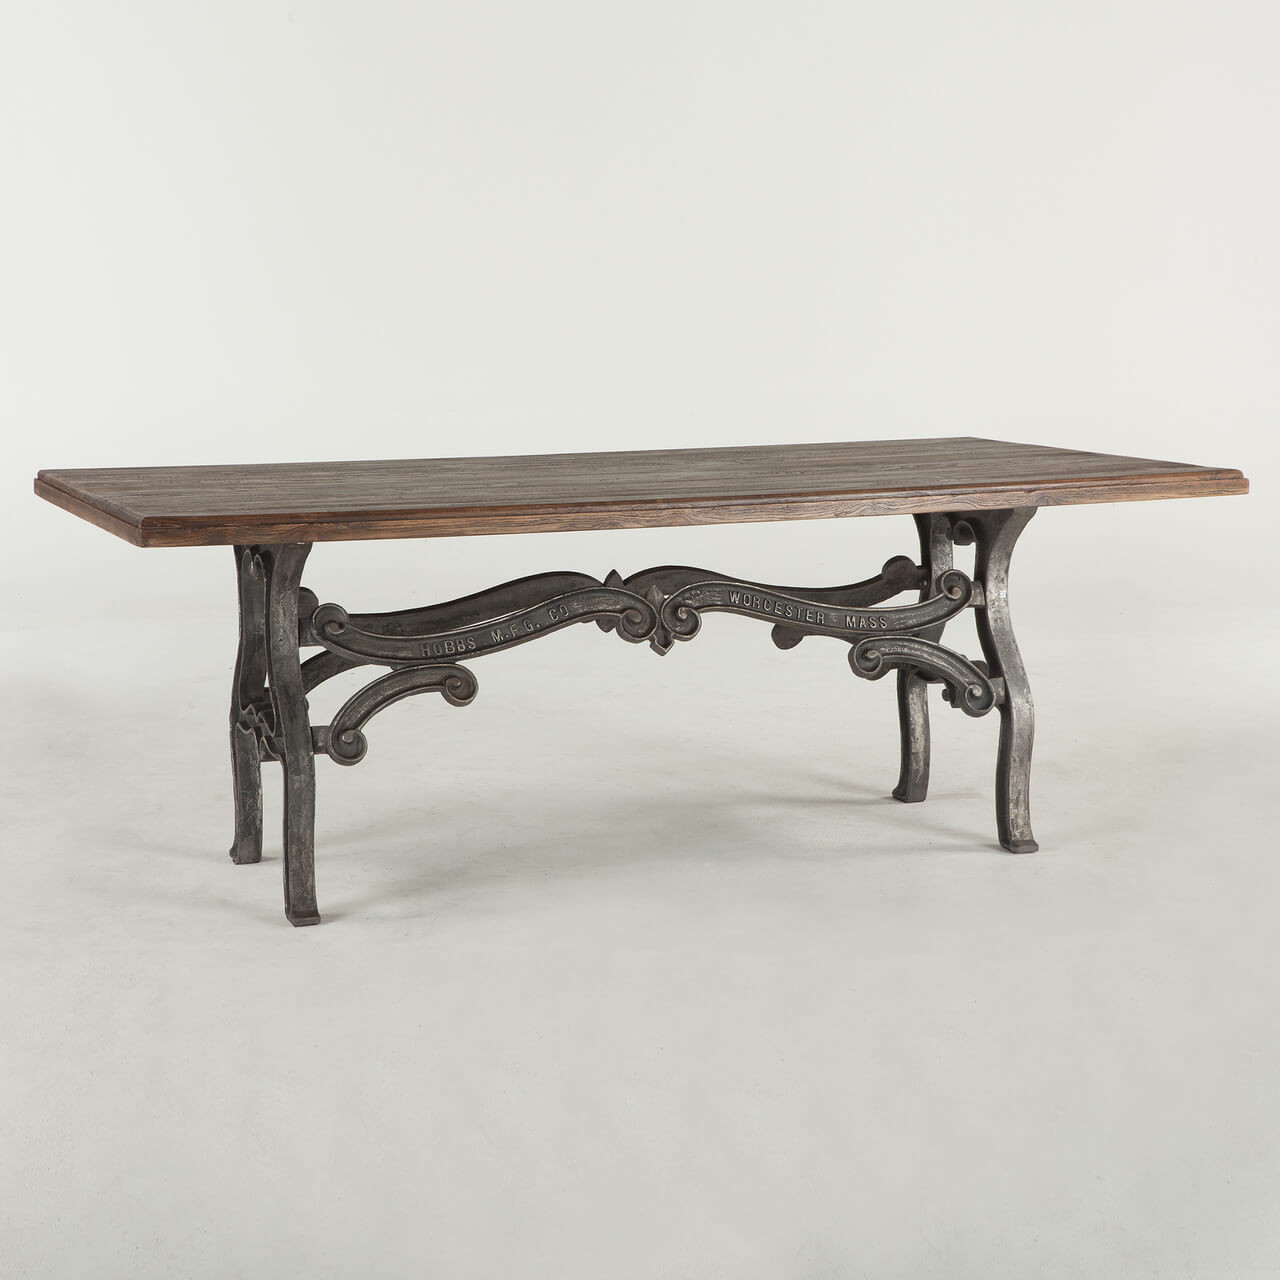 Marvelous Hobbs French Industrial Dining Room Table 84 Home Interior And Landscaping Spoatsignezvosmurscom